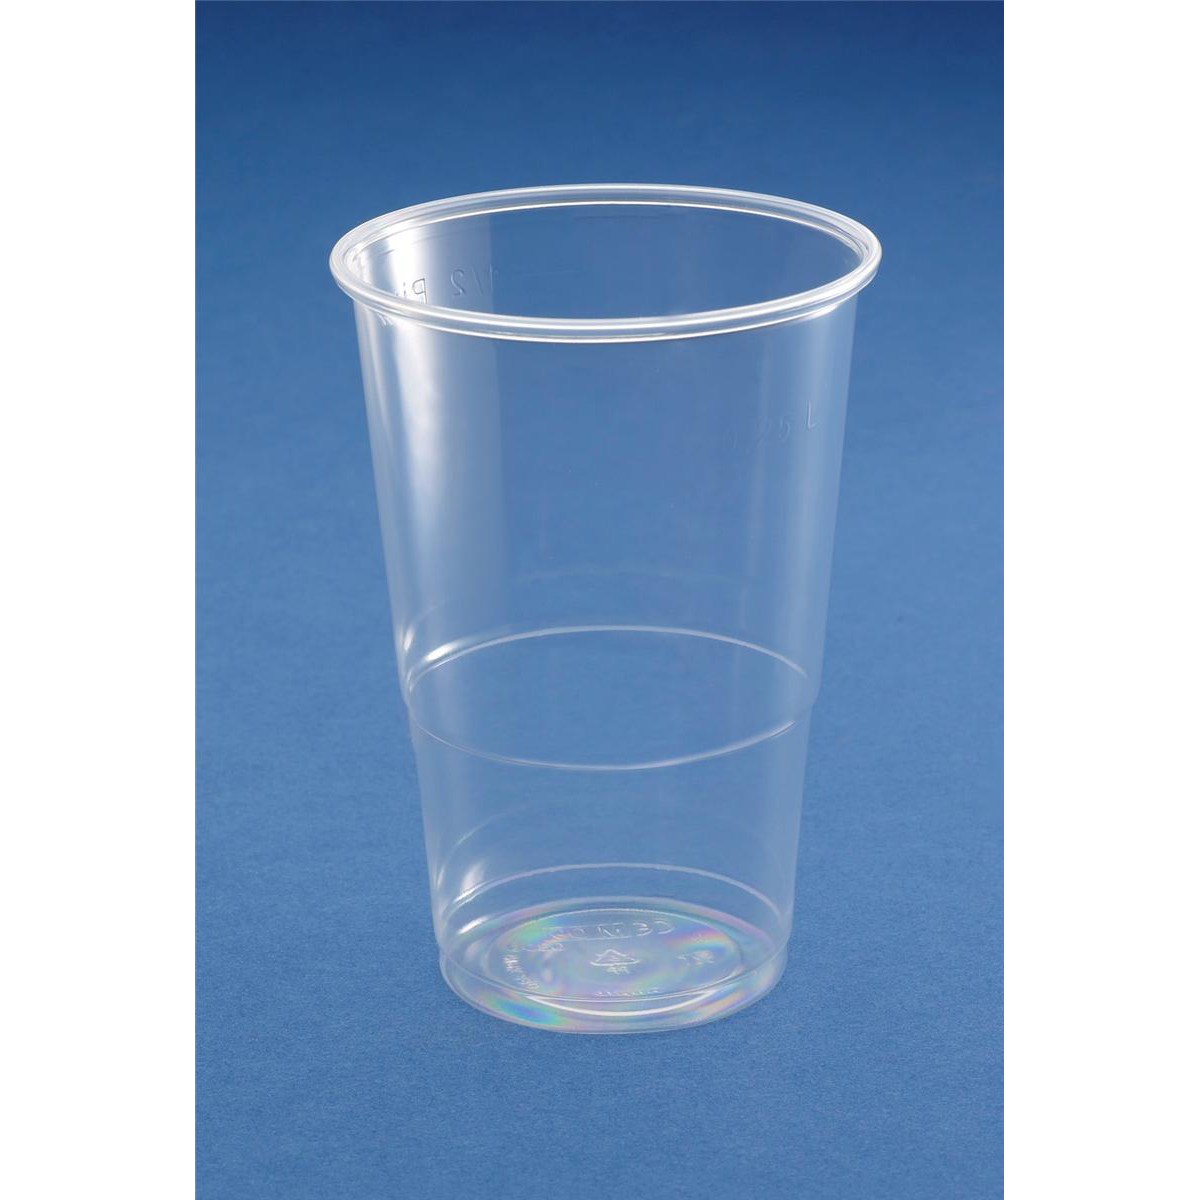 Half Pint Tumbler CE Marked Polypropylene 9.6oz 284ml Clear Ref 30010 Pack 50